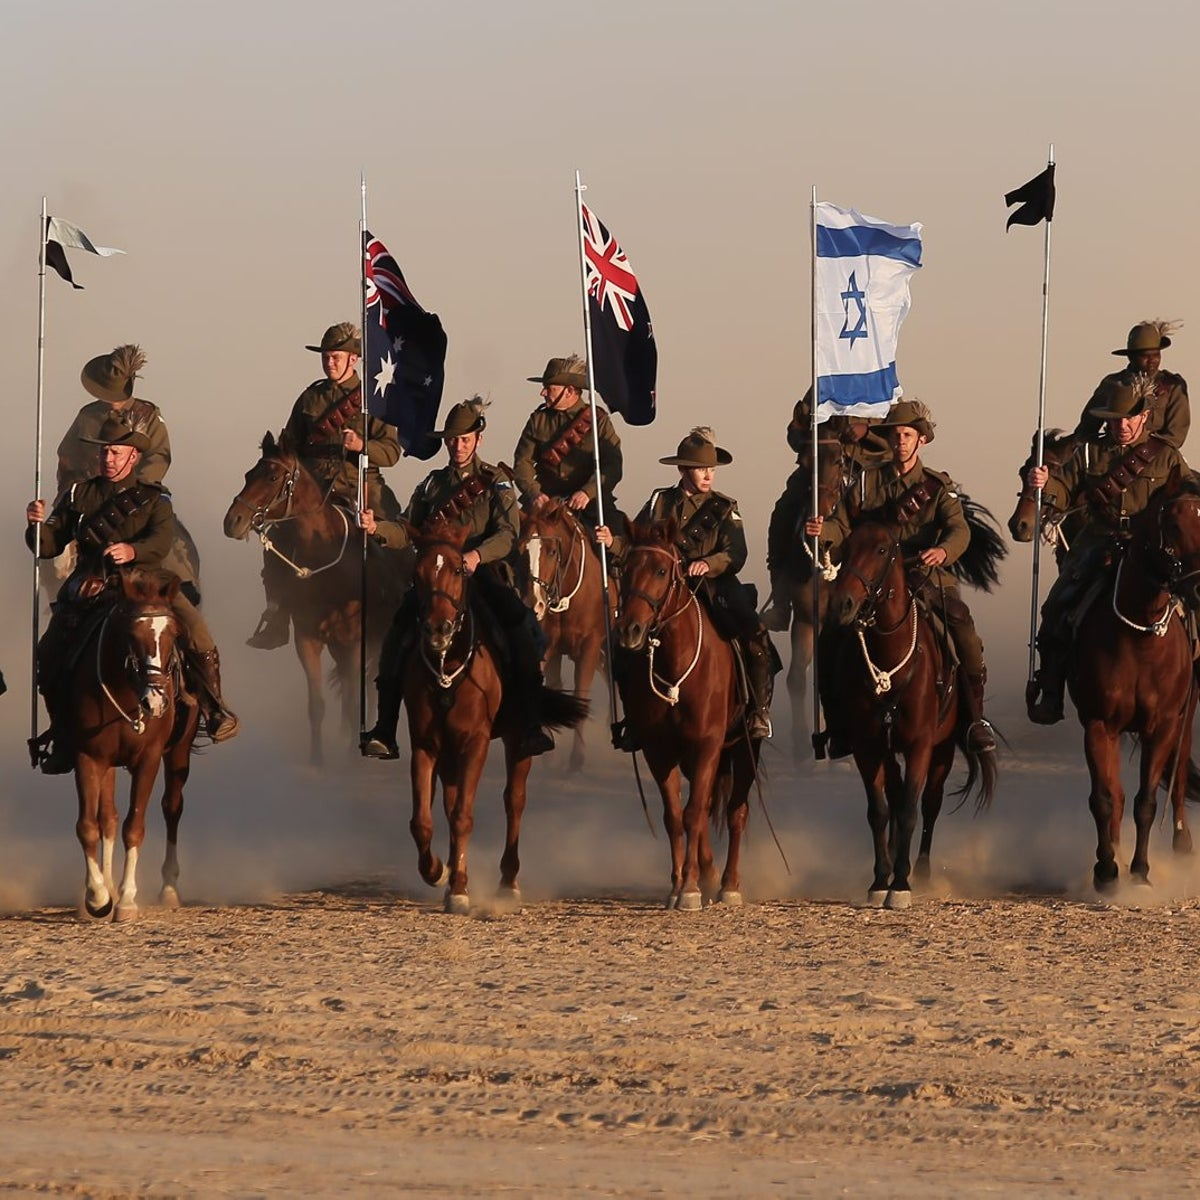 Australian Mounted Division and New Zealand Mounted Division soldiers ride their horses during the reenactment of the Battle of Be'er Sheva in southern Israel, Tuesday, Oct. 31, 2017.